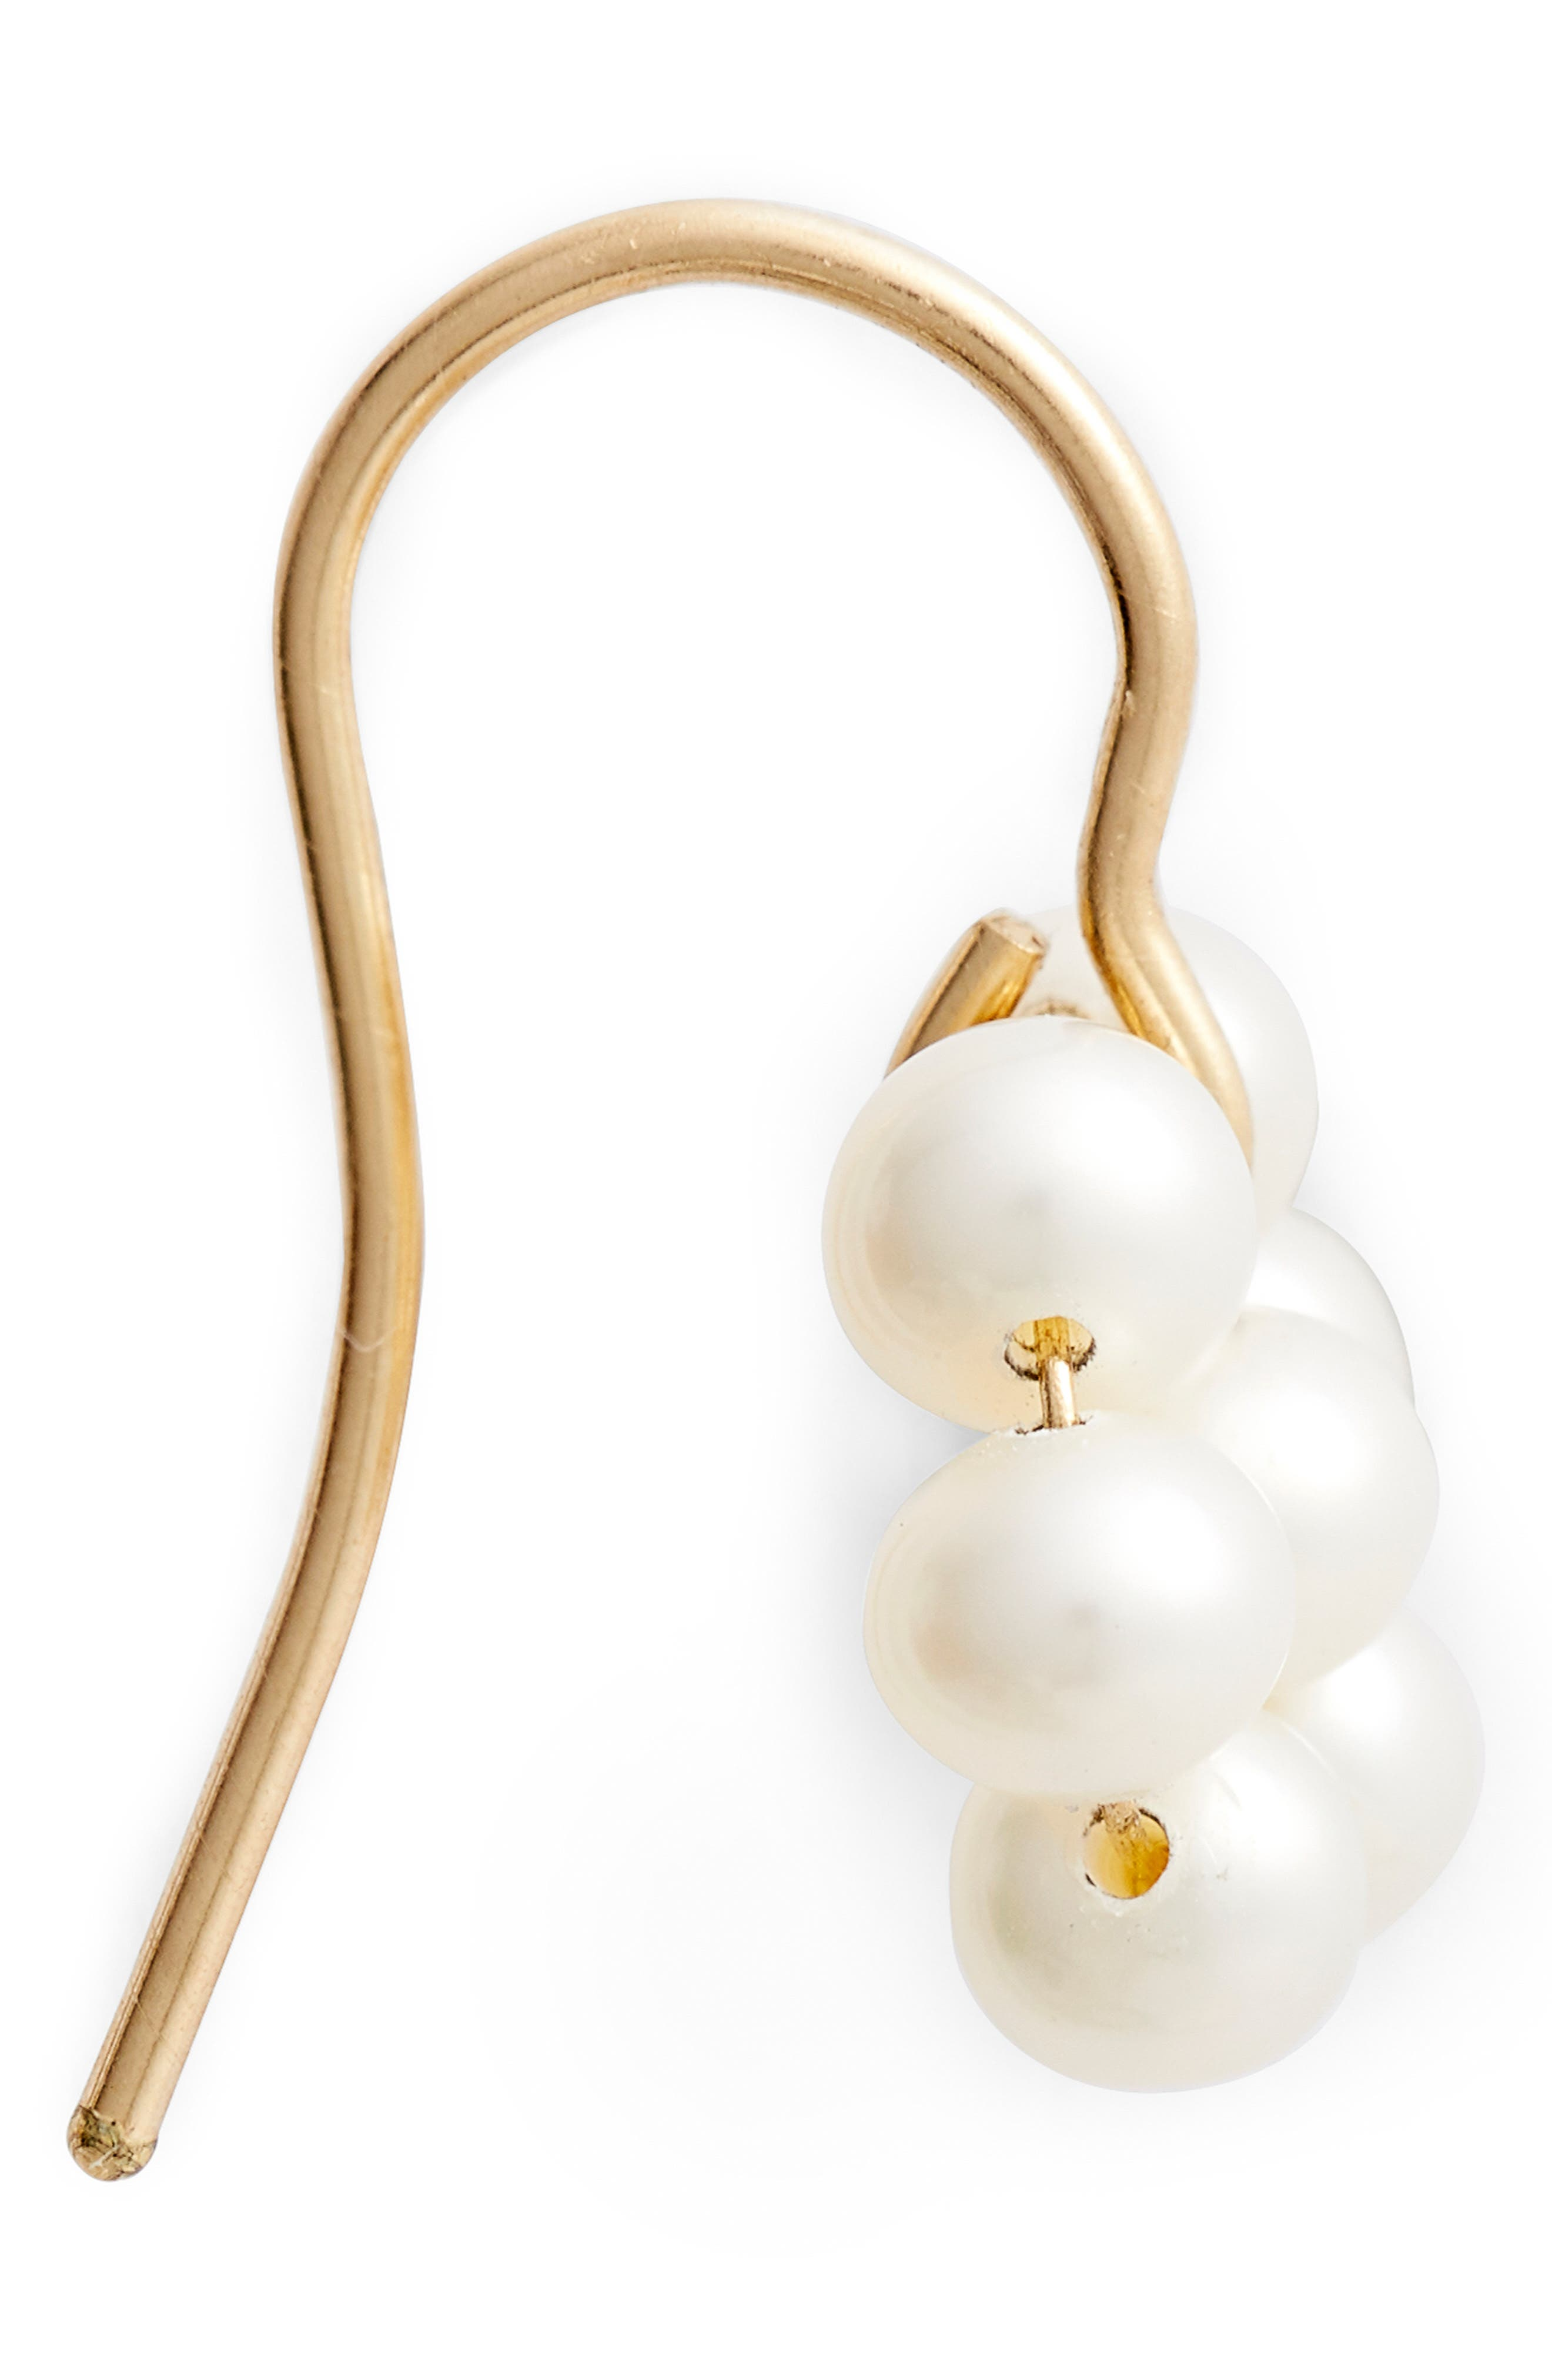 Cultured Pearl Flower Earrings,                             Alternate thumbnail 4, color,                             YELLOW GOLD/ WHITE PEARL